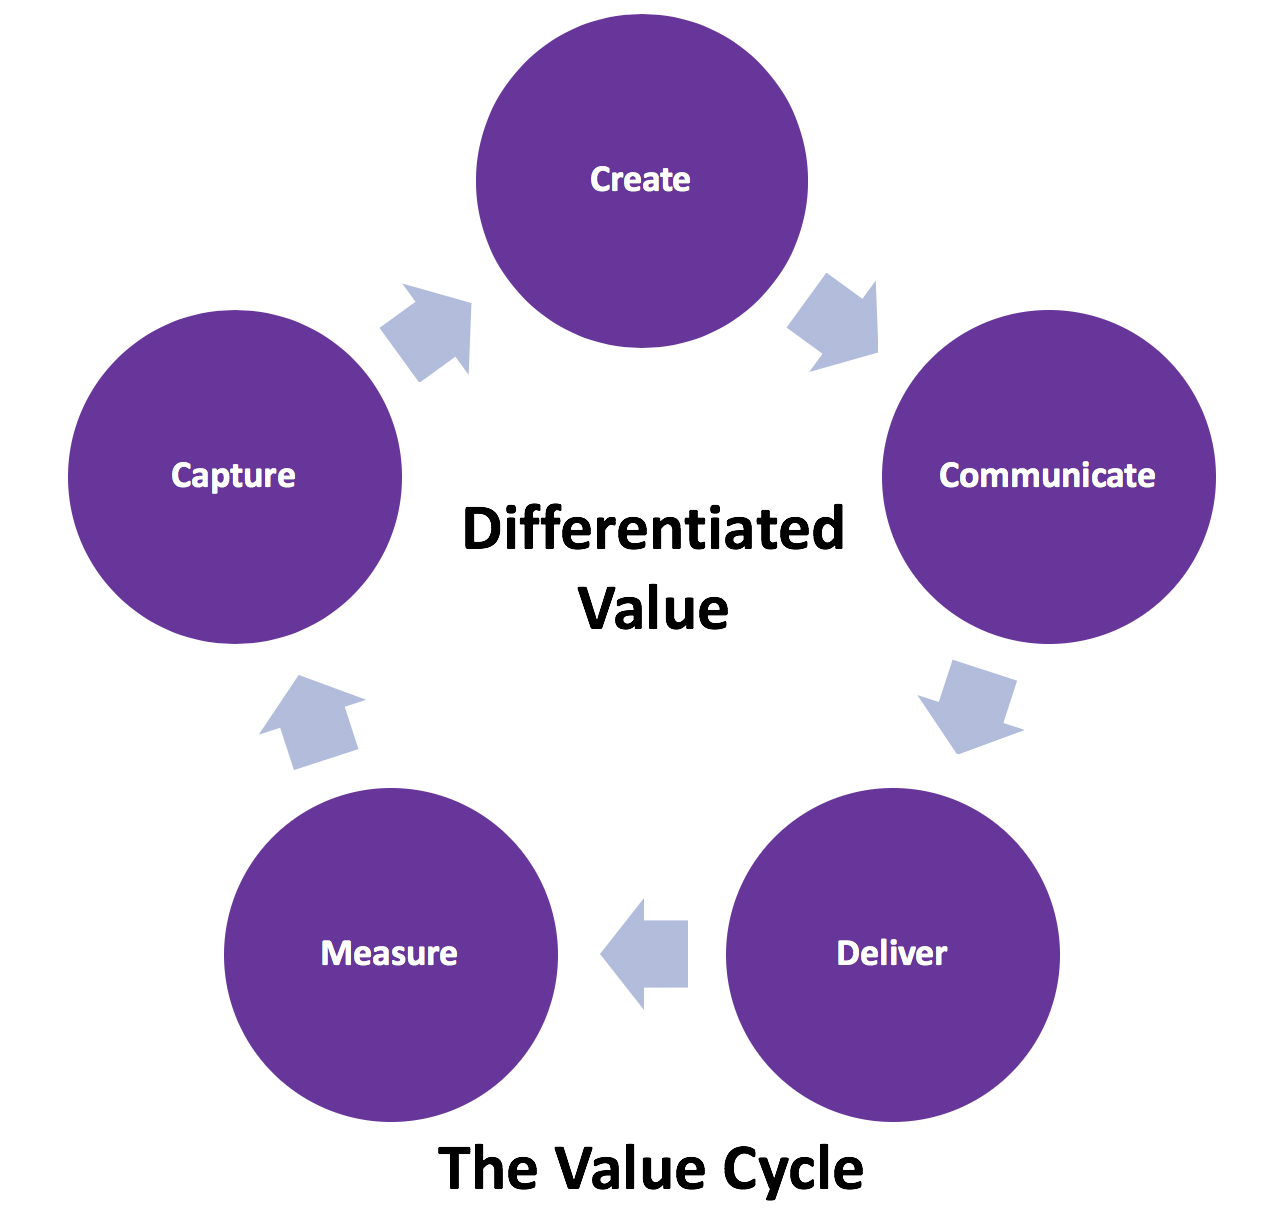 The Value Cycle